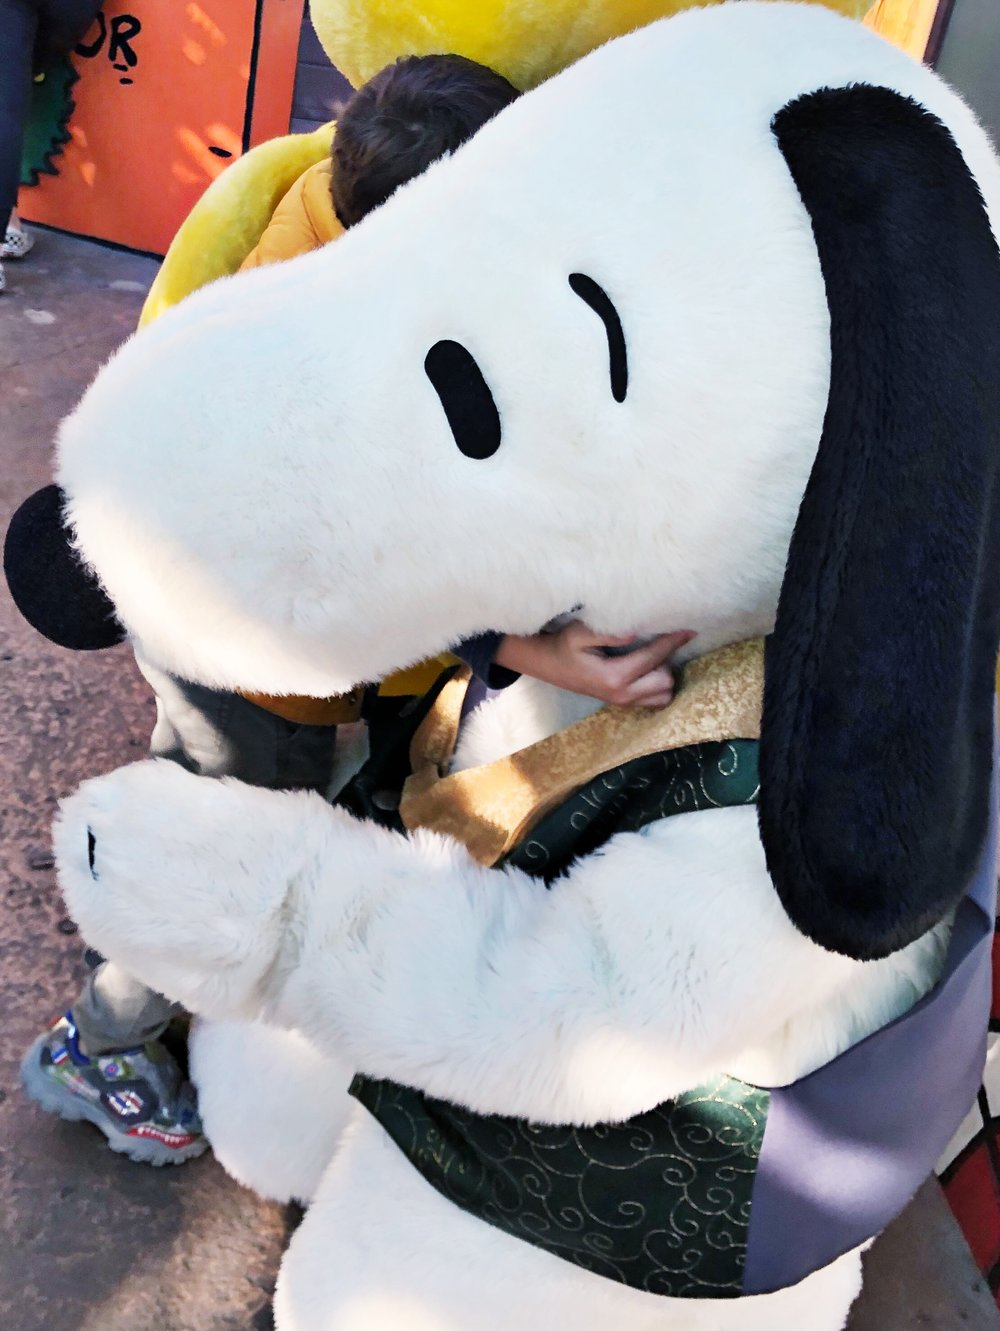 A Bear hug for Benny from Snoopy